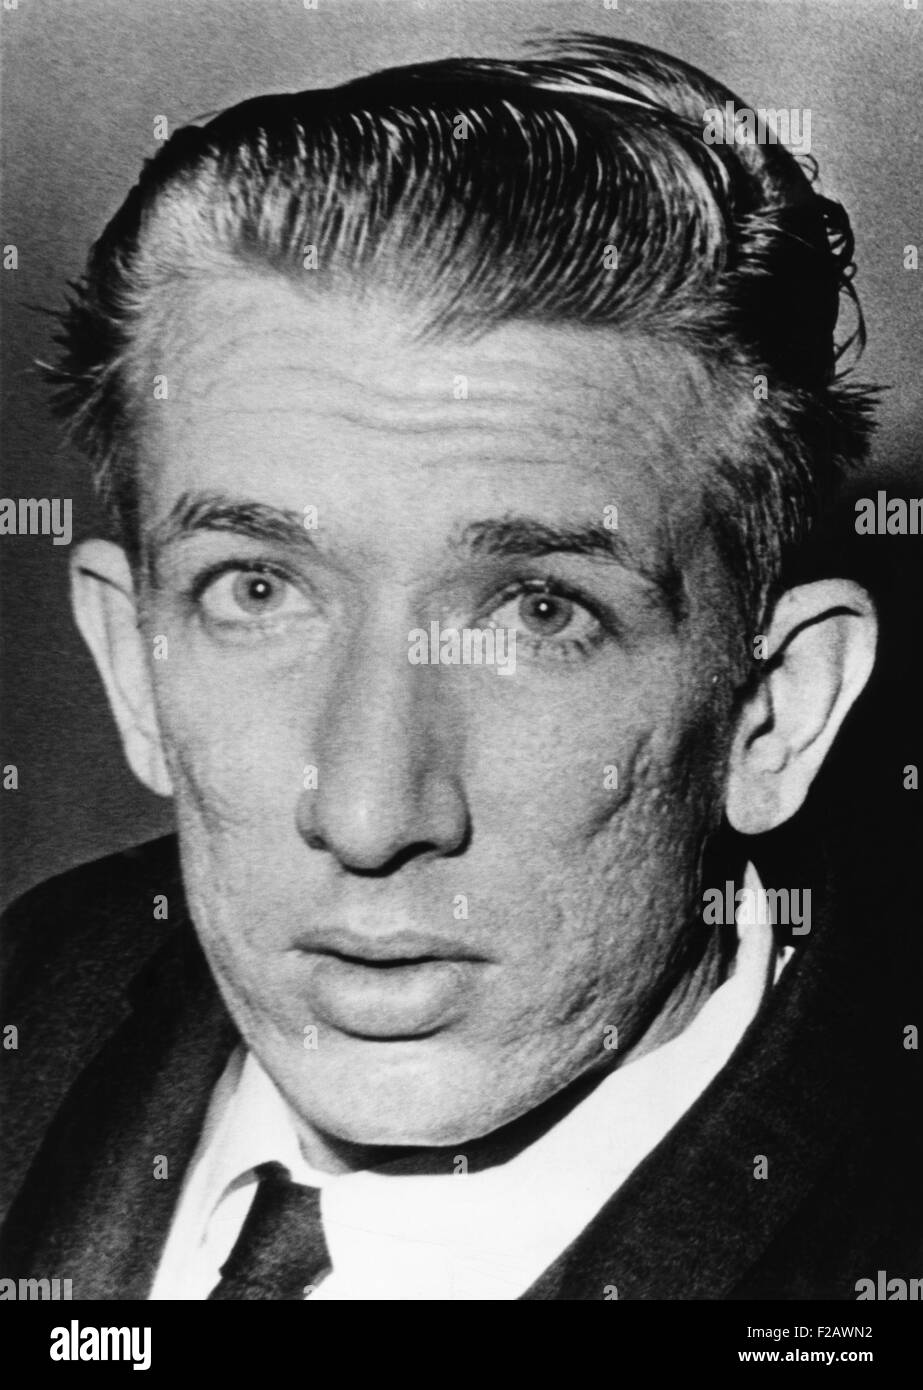 Richard Speck, 24, accused slayer of eight student nurses, in Chicago court room. August 18, 1966. (CSU_2015_11 - Stock Image